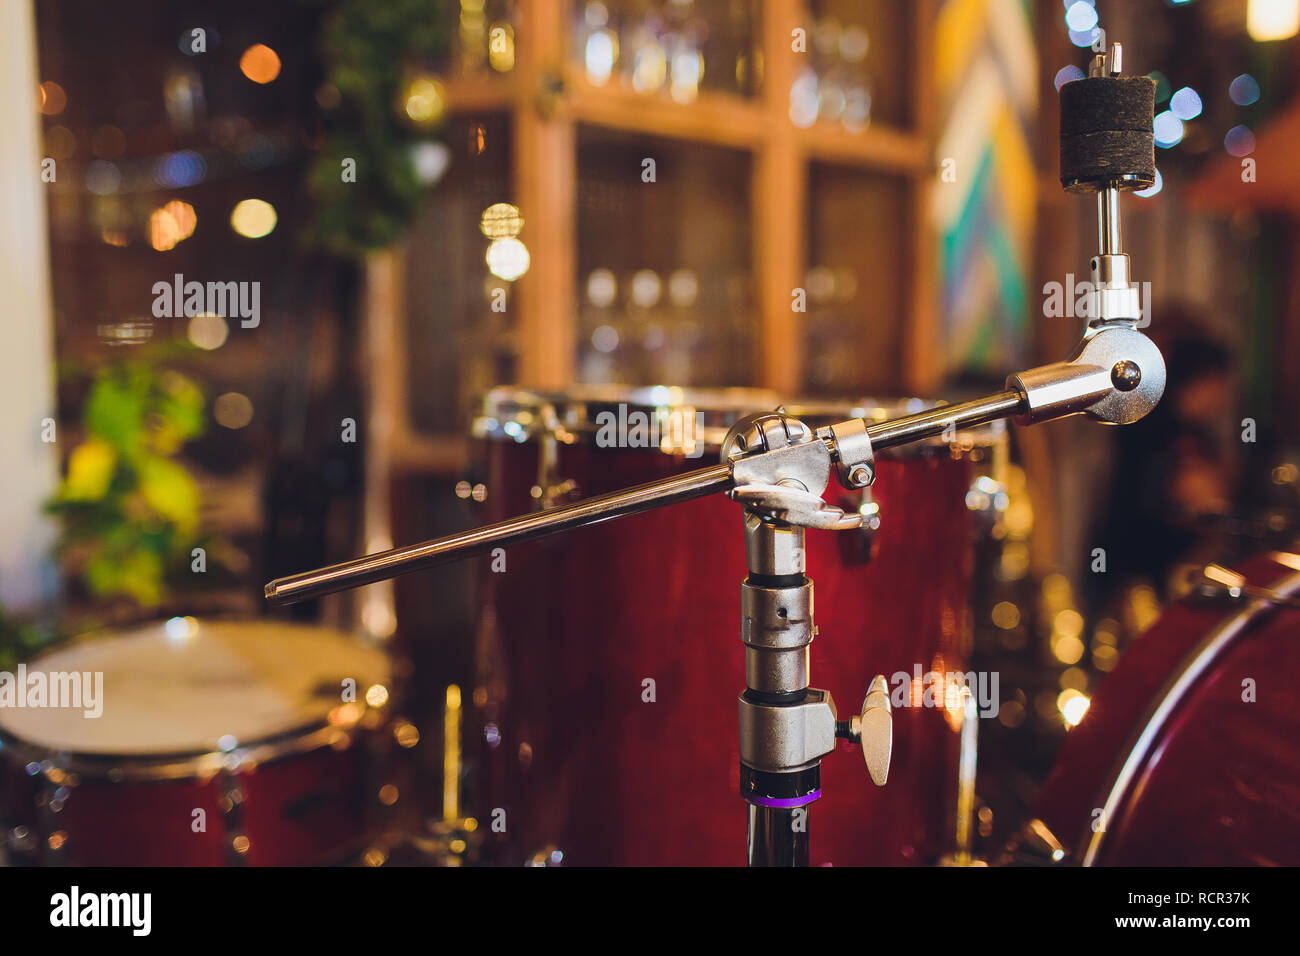 Drums conceptual image. Picture of drums and drumsticks lying on snare drum. Retro vintage instagram picture. - Stock Image